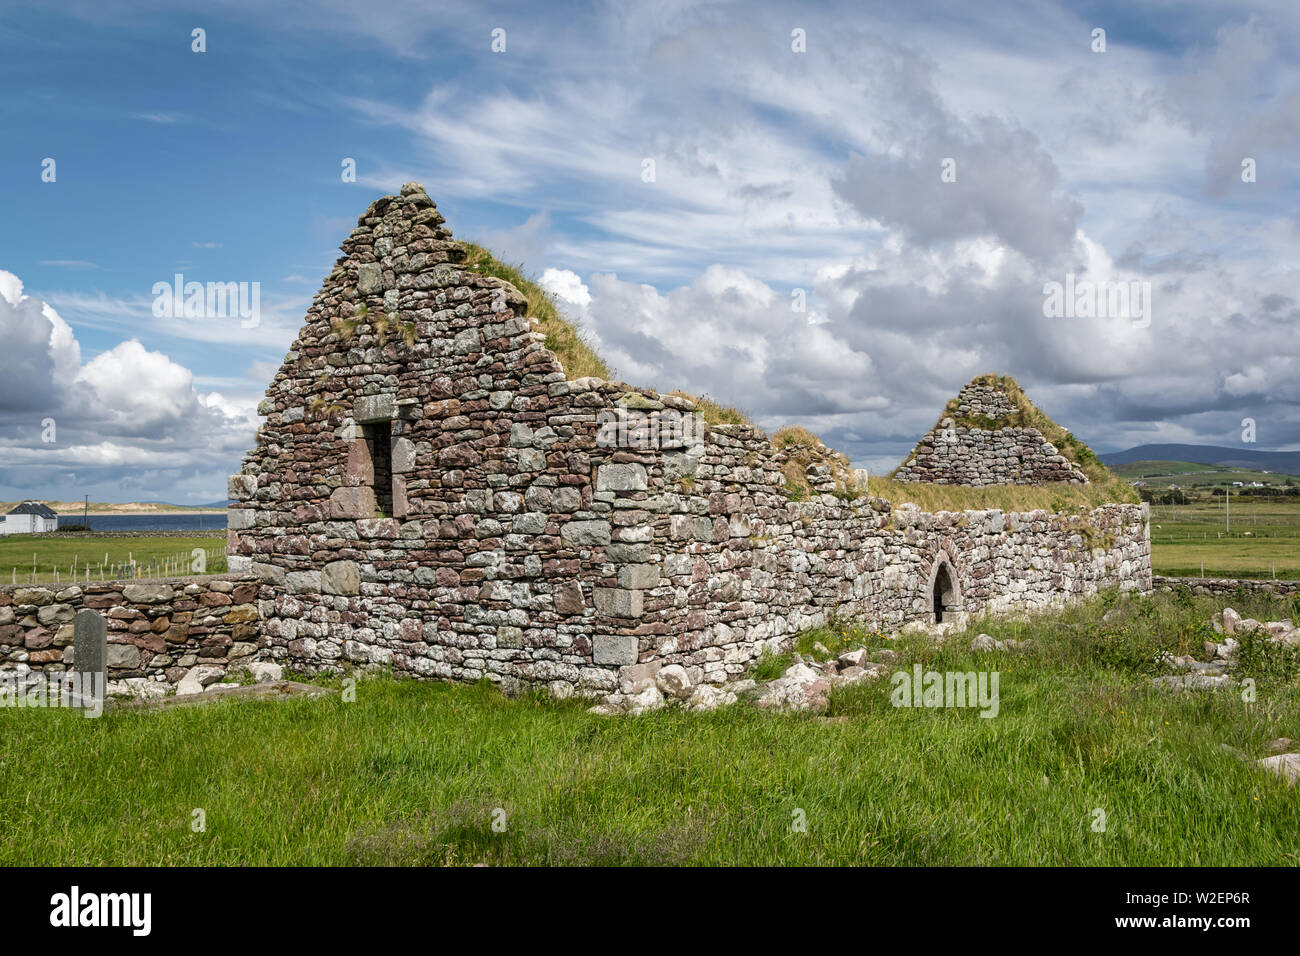 These are the ruins of an old stone Irish church in County Mayo in Ireland Stock Photo